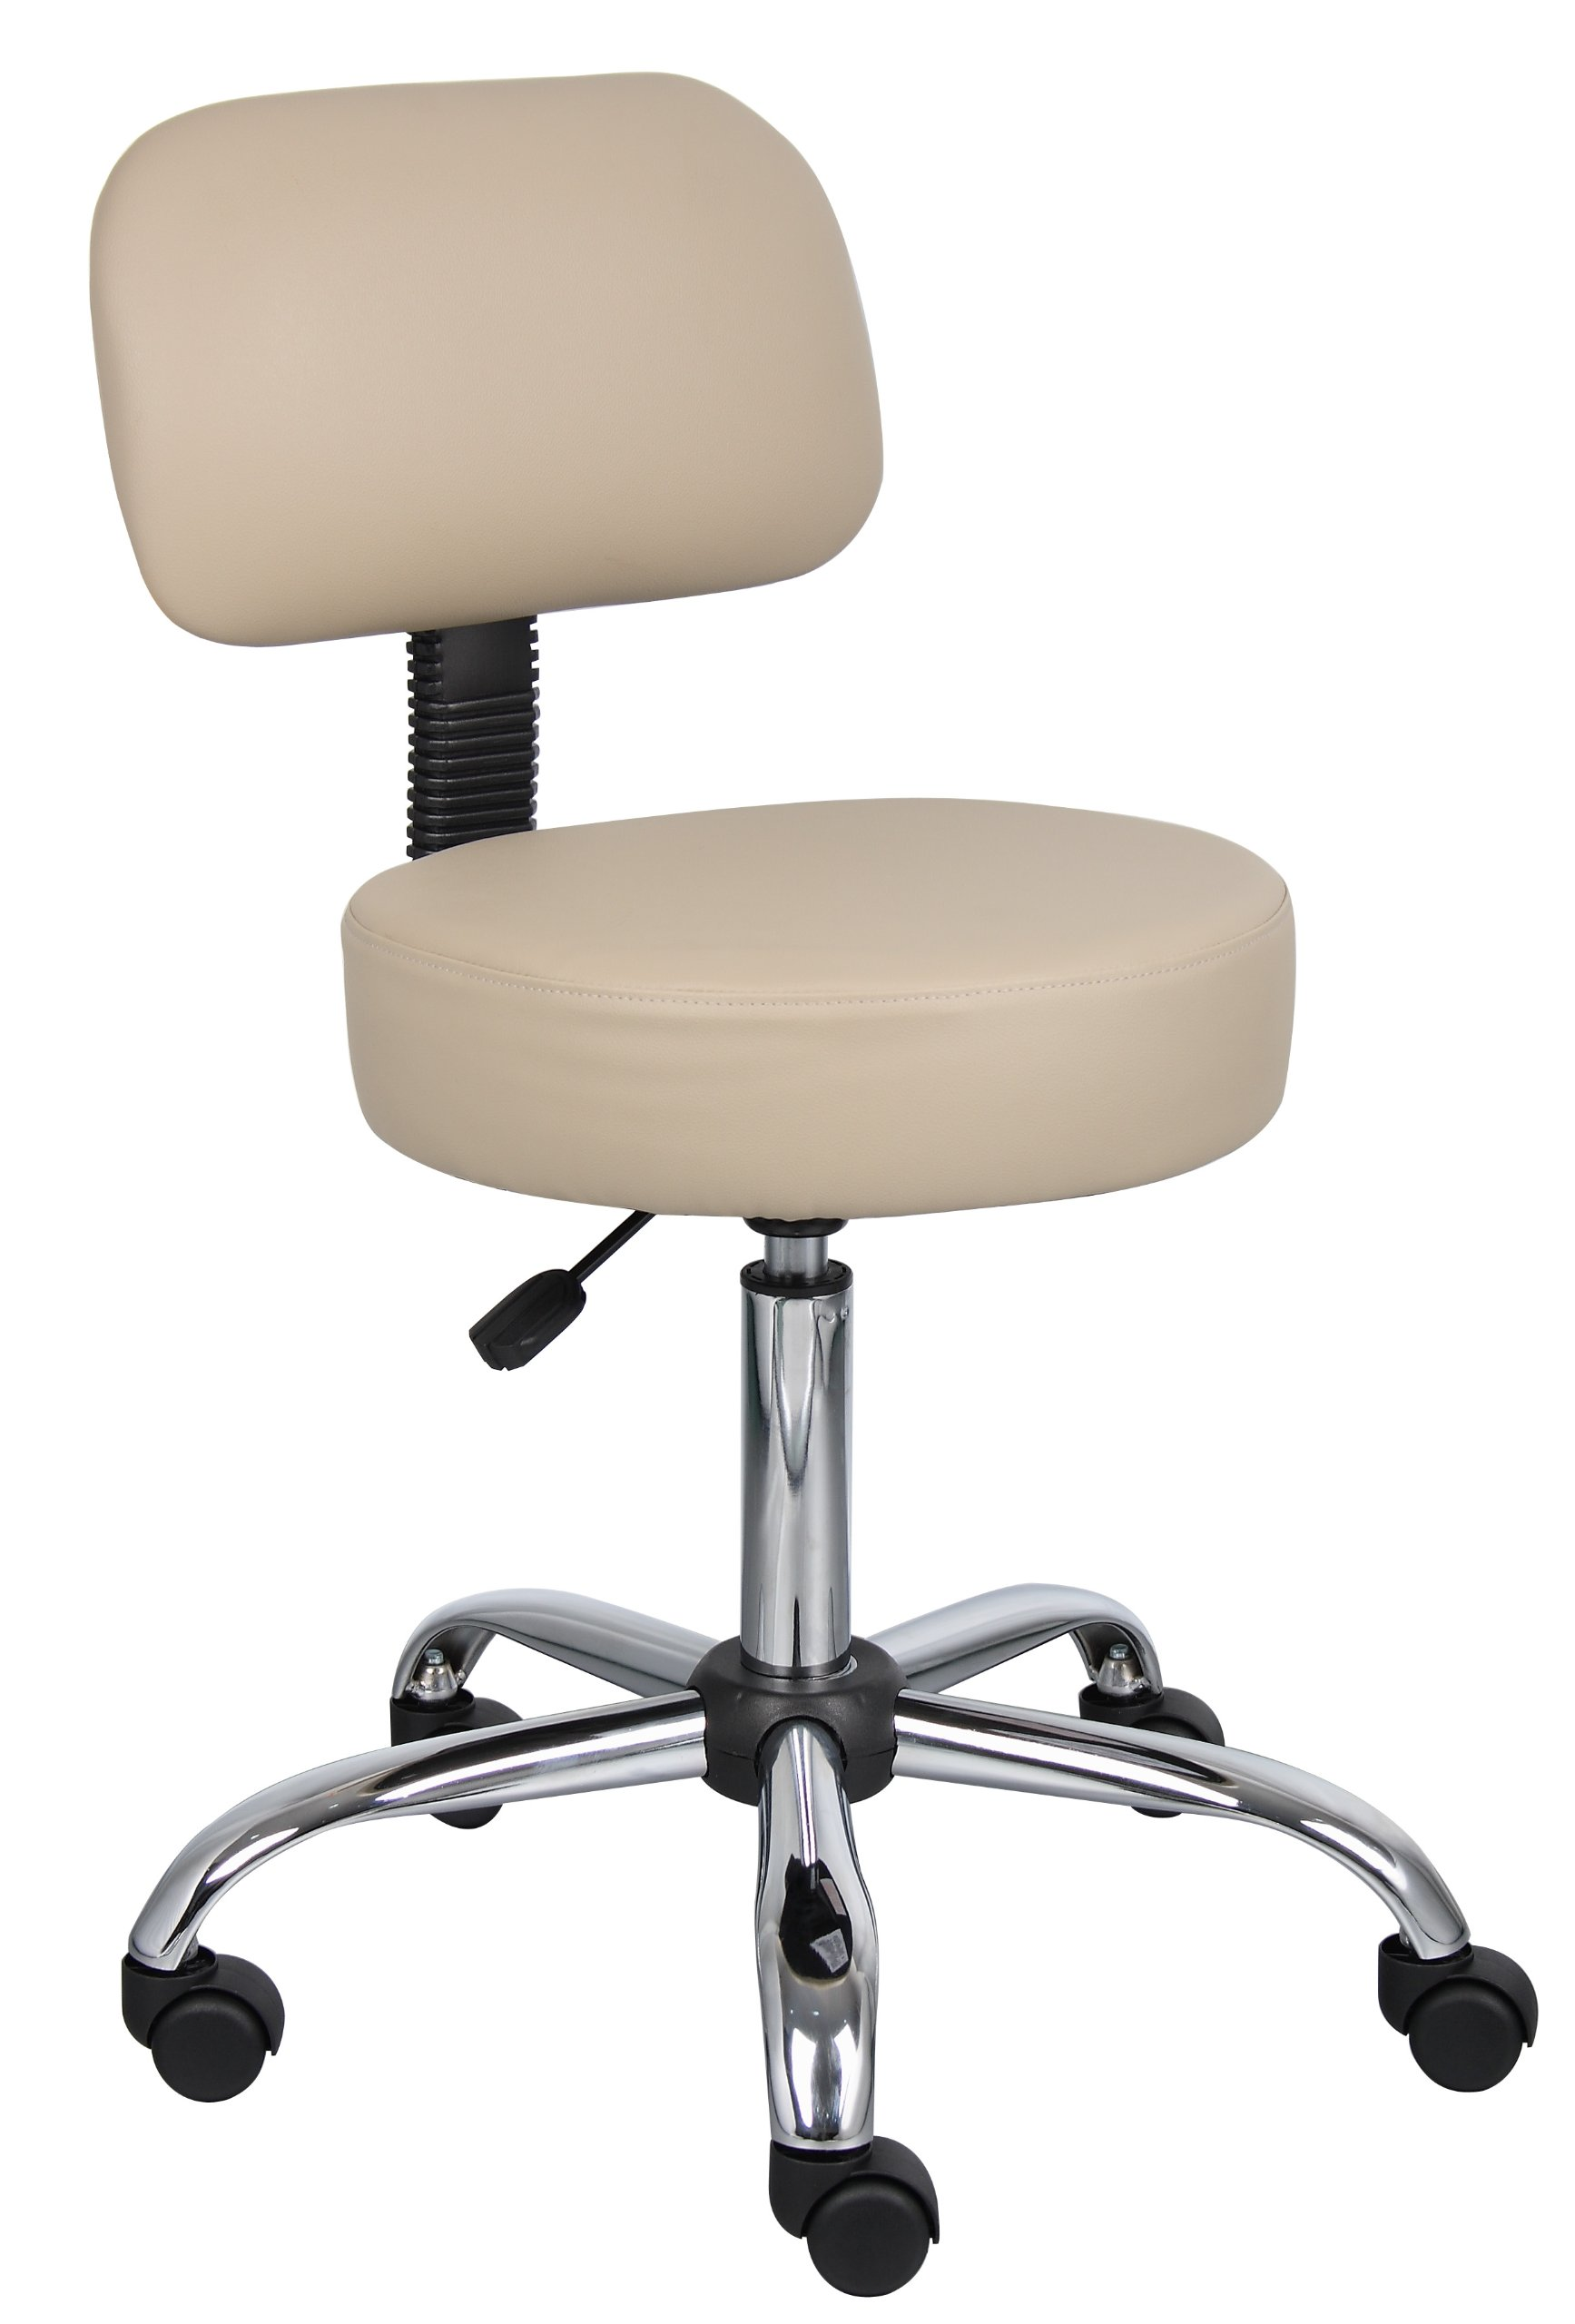 Medical Dentist Chair Adjustable Seat Dental Office Lab